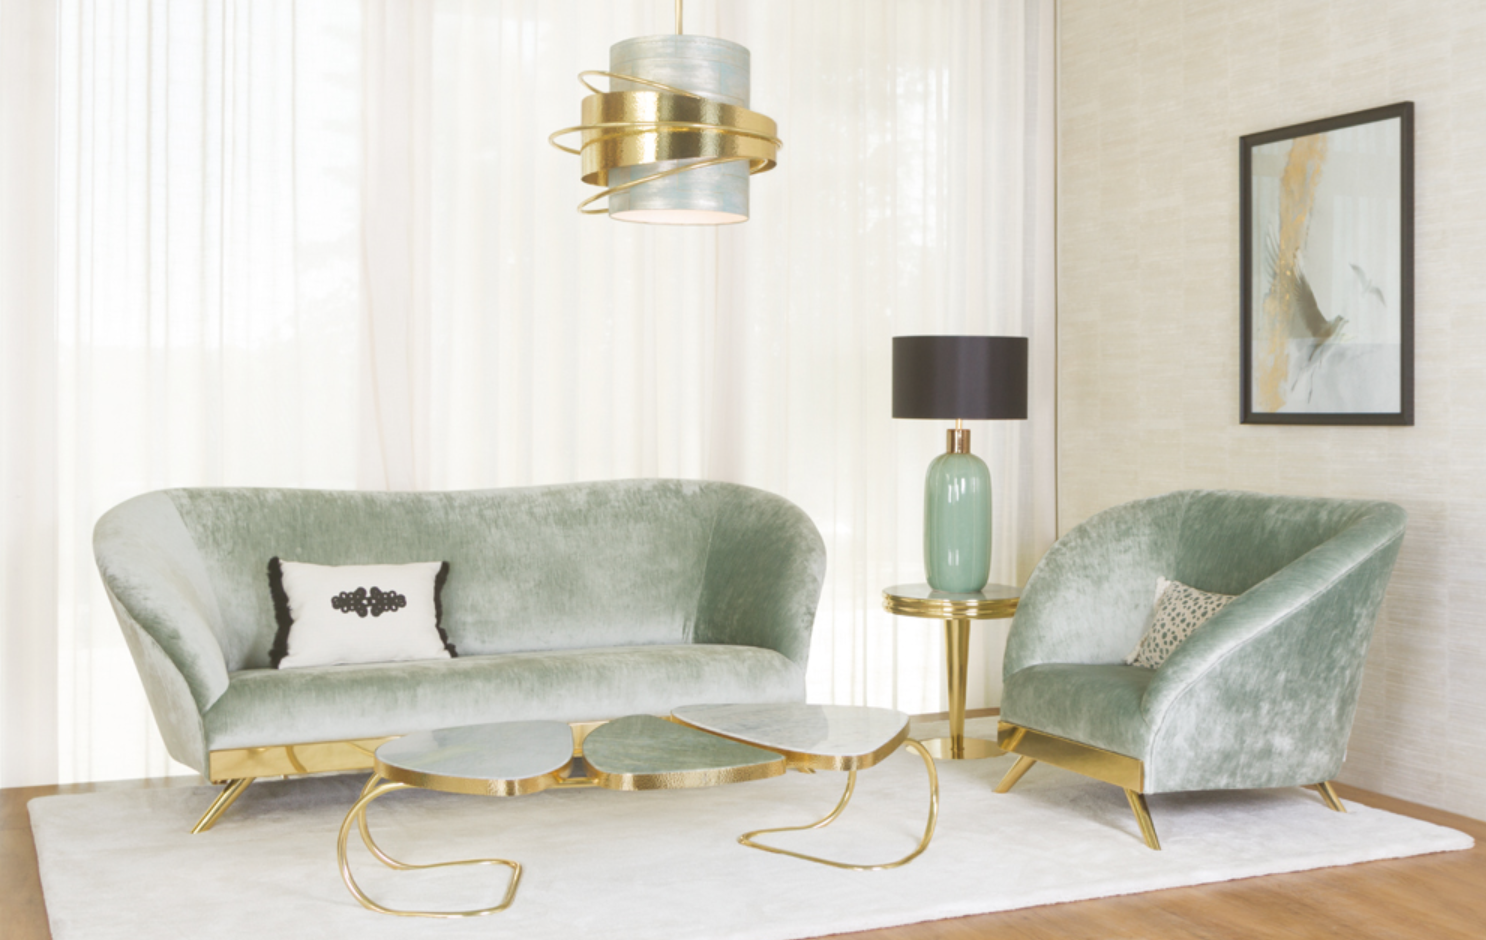 Leaders in elegance and sophistication, Green Apple Home Style is a Portuguese-based company bringing their international style to High Point! What we can expect to see: World-glamour! Gold accents! Modern, luxe designs.